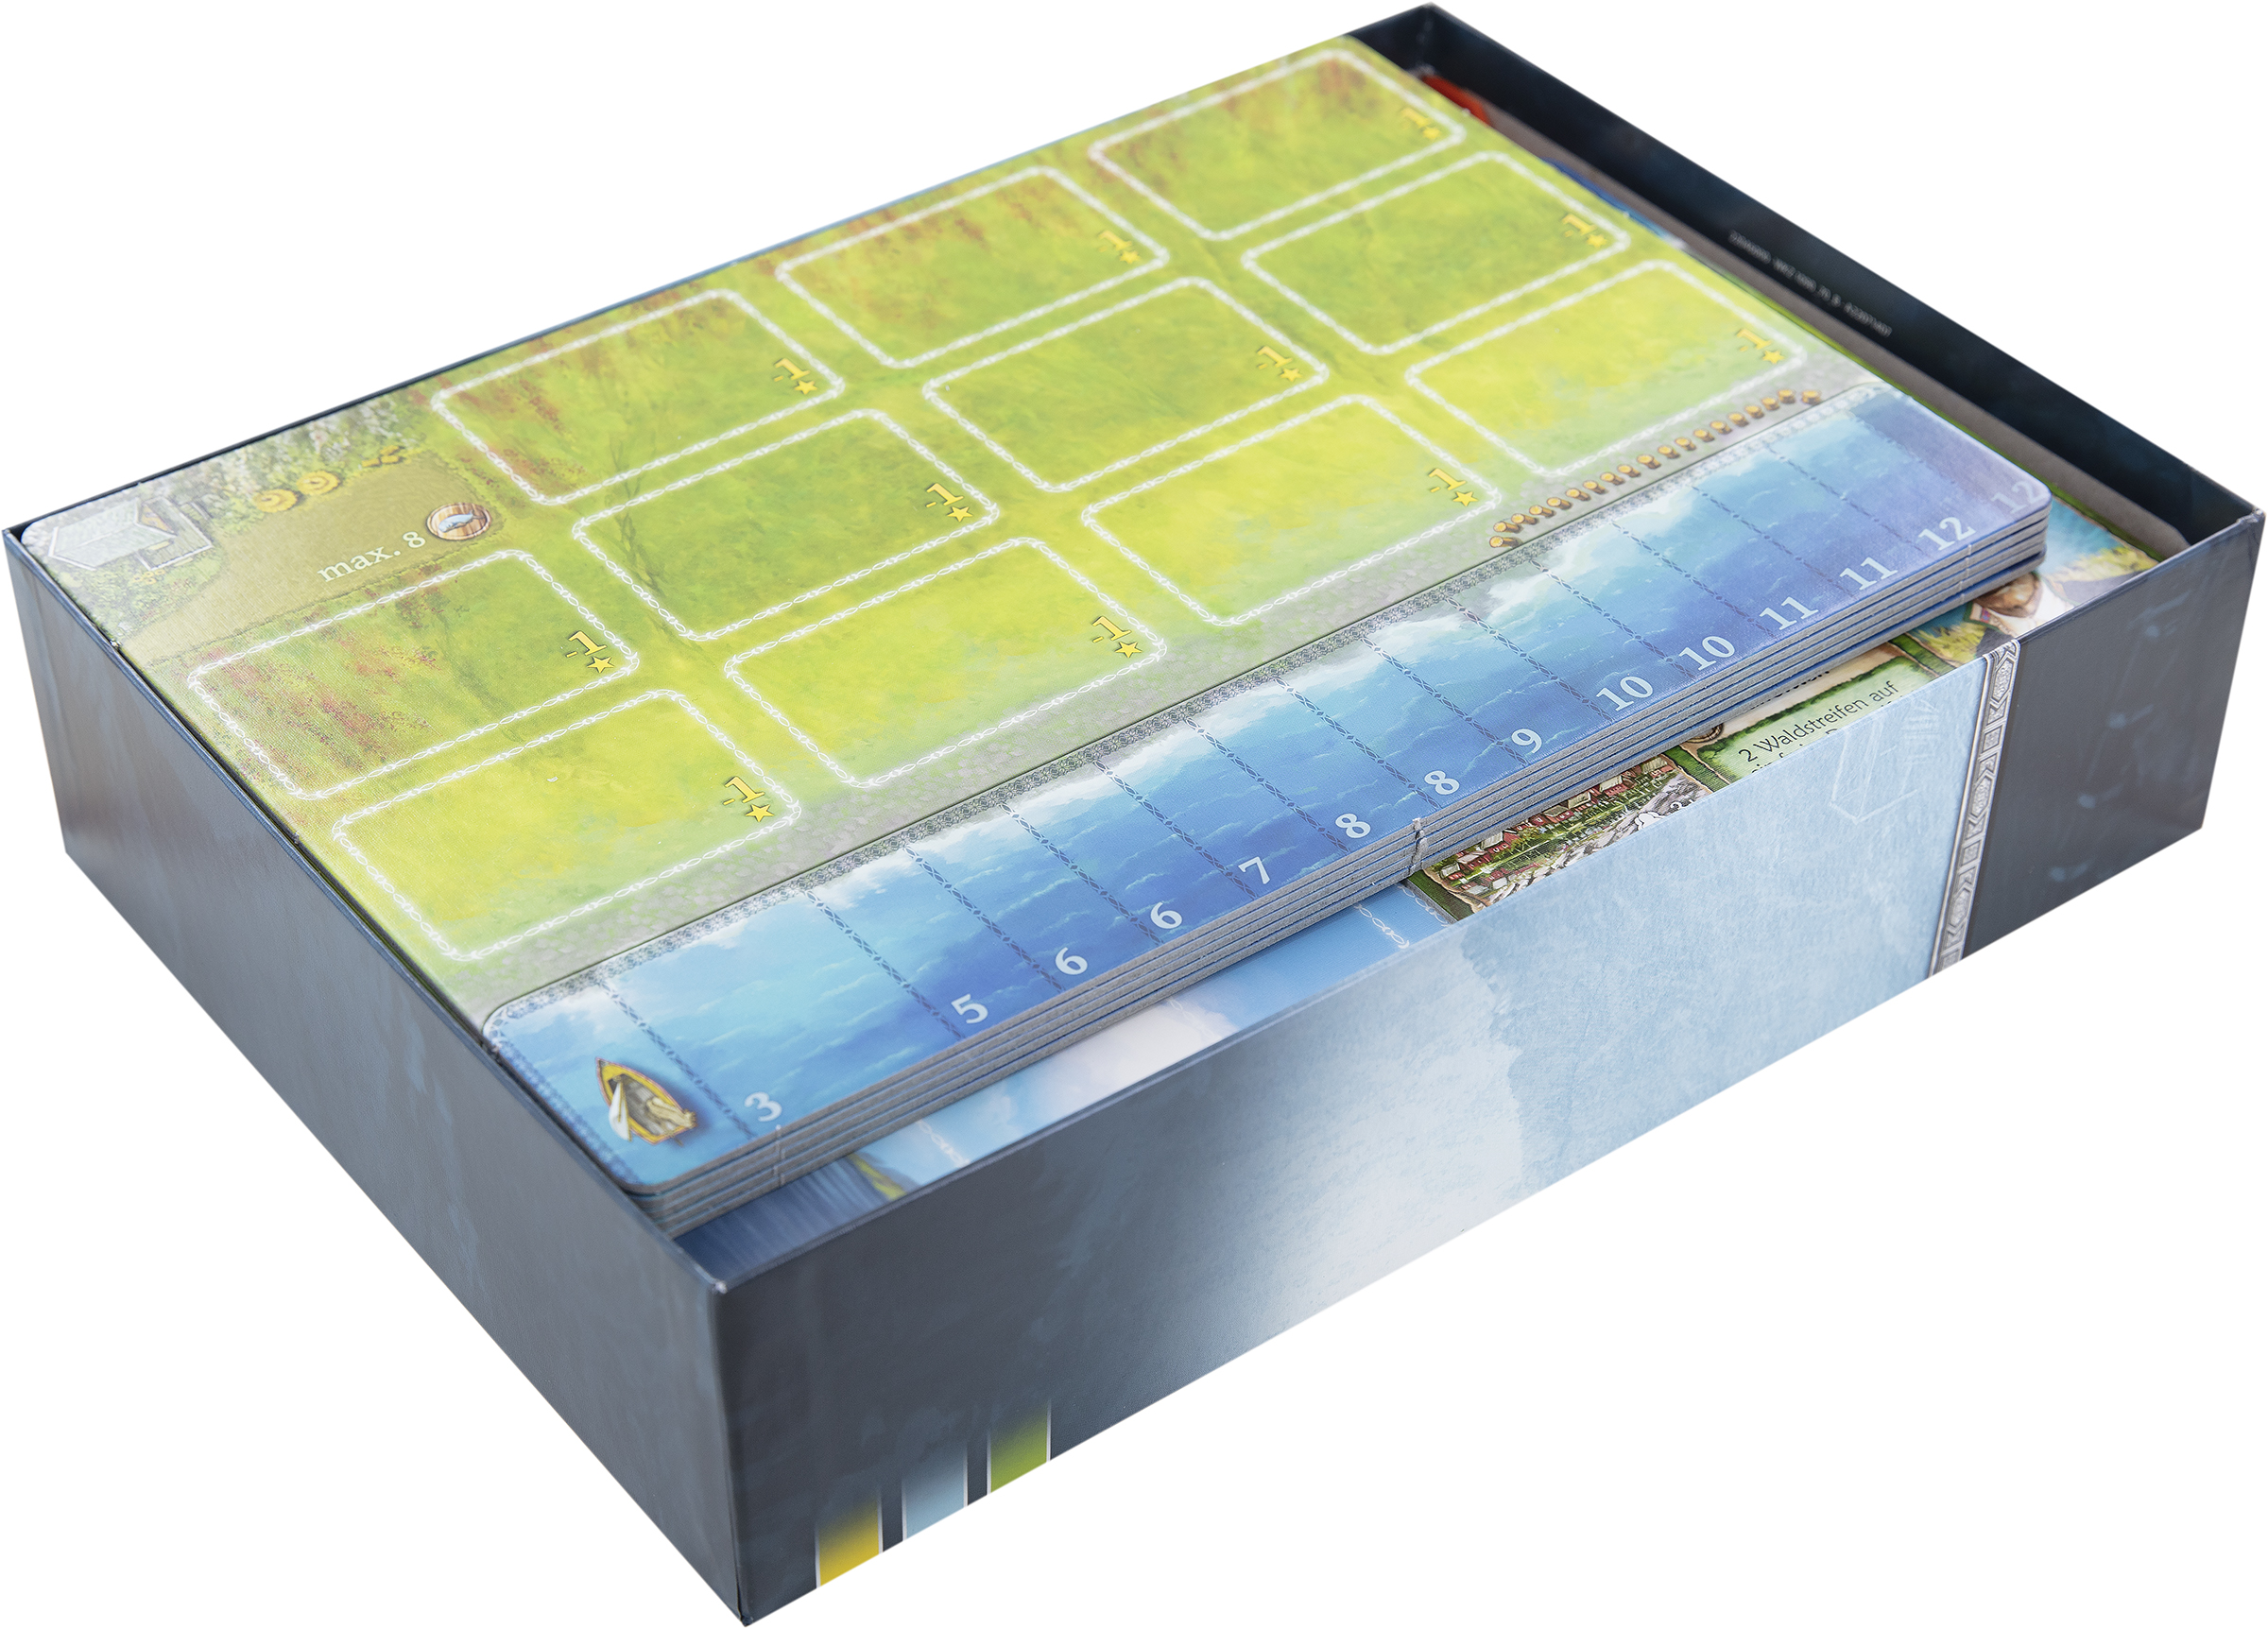 Feldherr Organizer for Nusfjord and expansion Plaice Deck